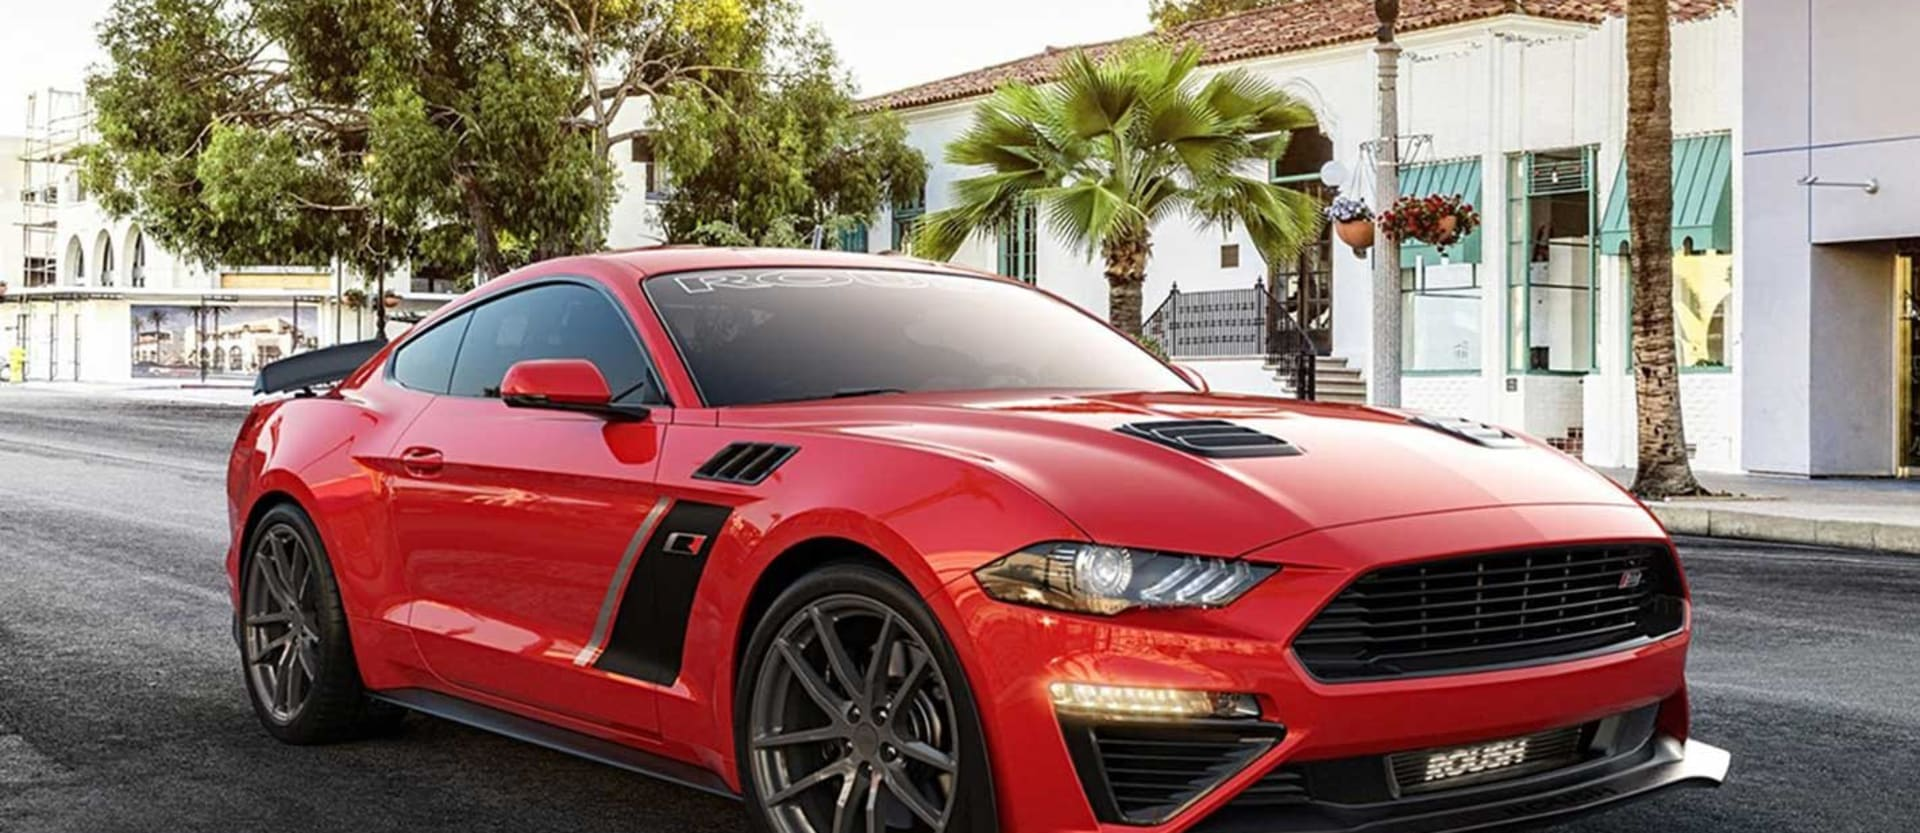 2020 Roush Stage 3 Mustang Australia available